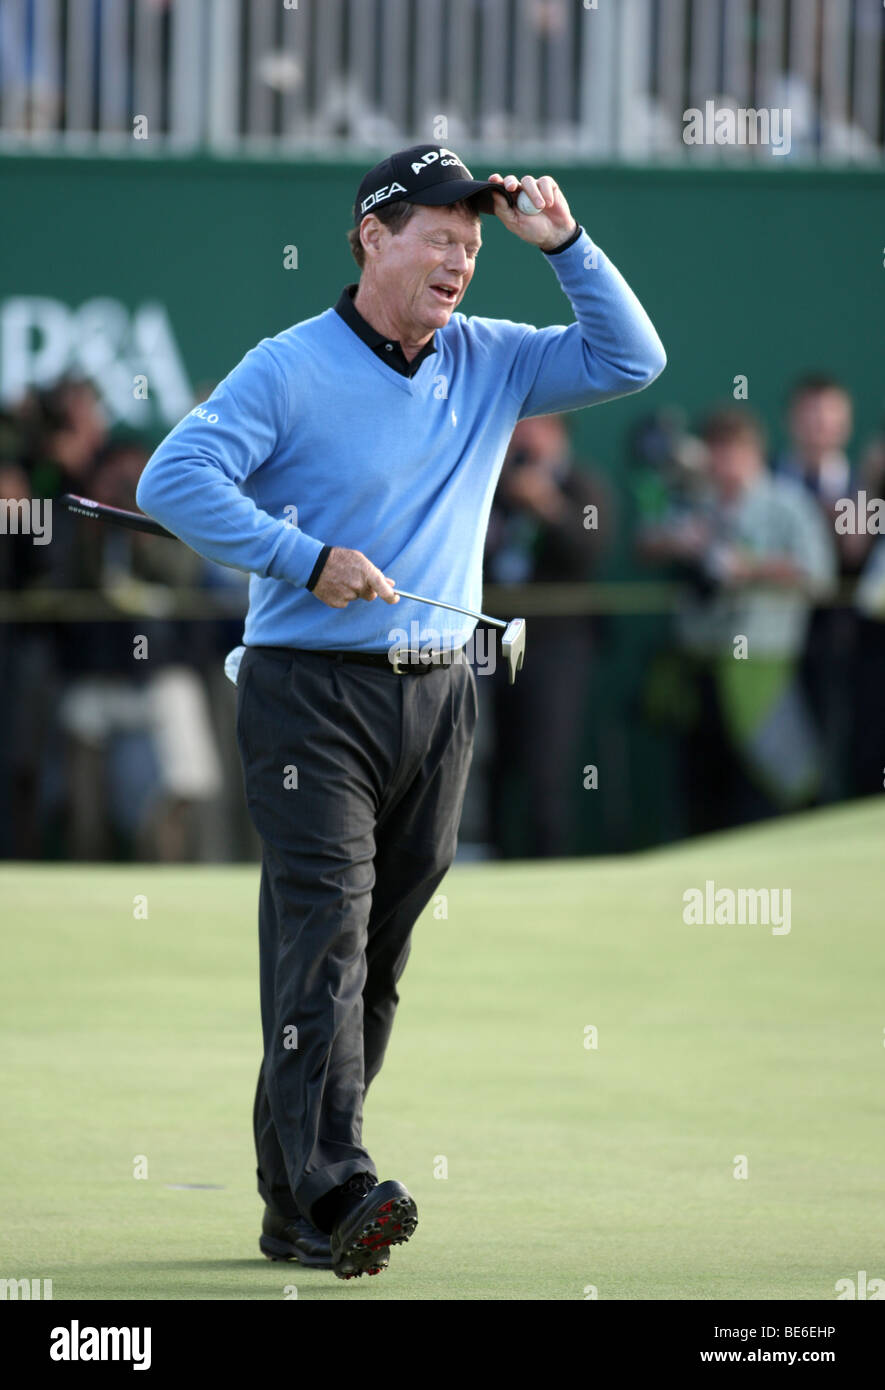 TOM WATSON MISSES PUTT ON 18TH THE OPEN TURNBERRY 2009 TURNBERRY AYRSHIRE SCOTLAND 19 July 2009 - Stock Image